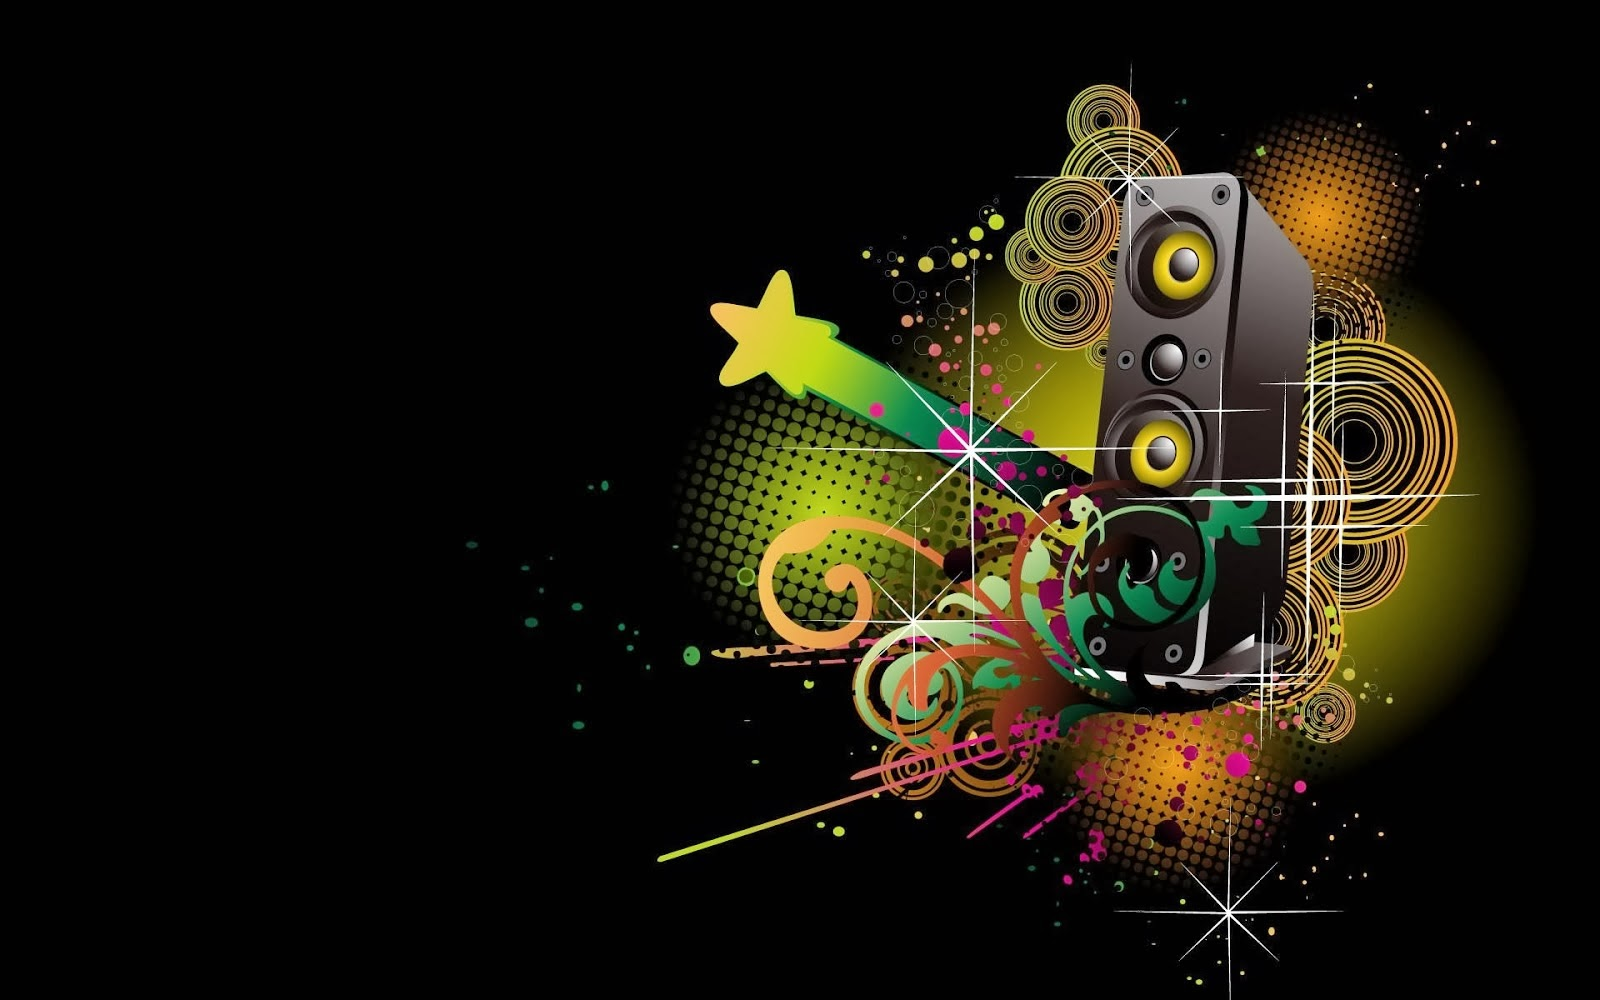 Really Cool Desktop Backgrounds Hd Cool music hd wallpapers 1600x1000